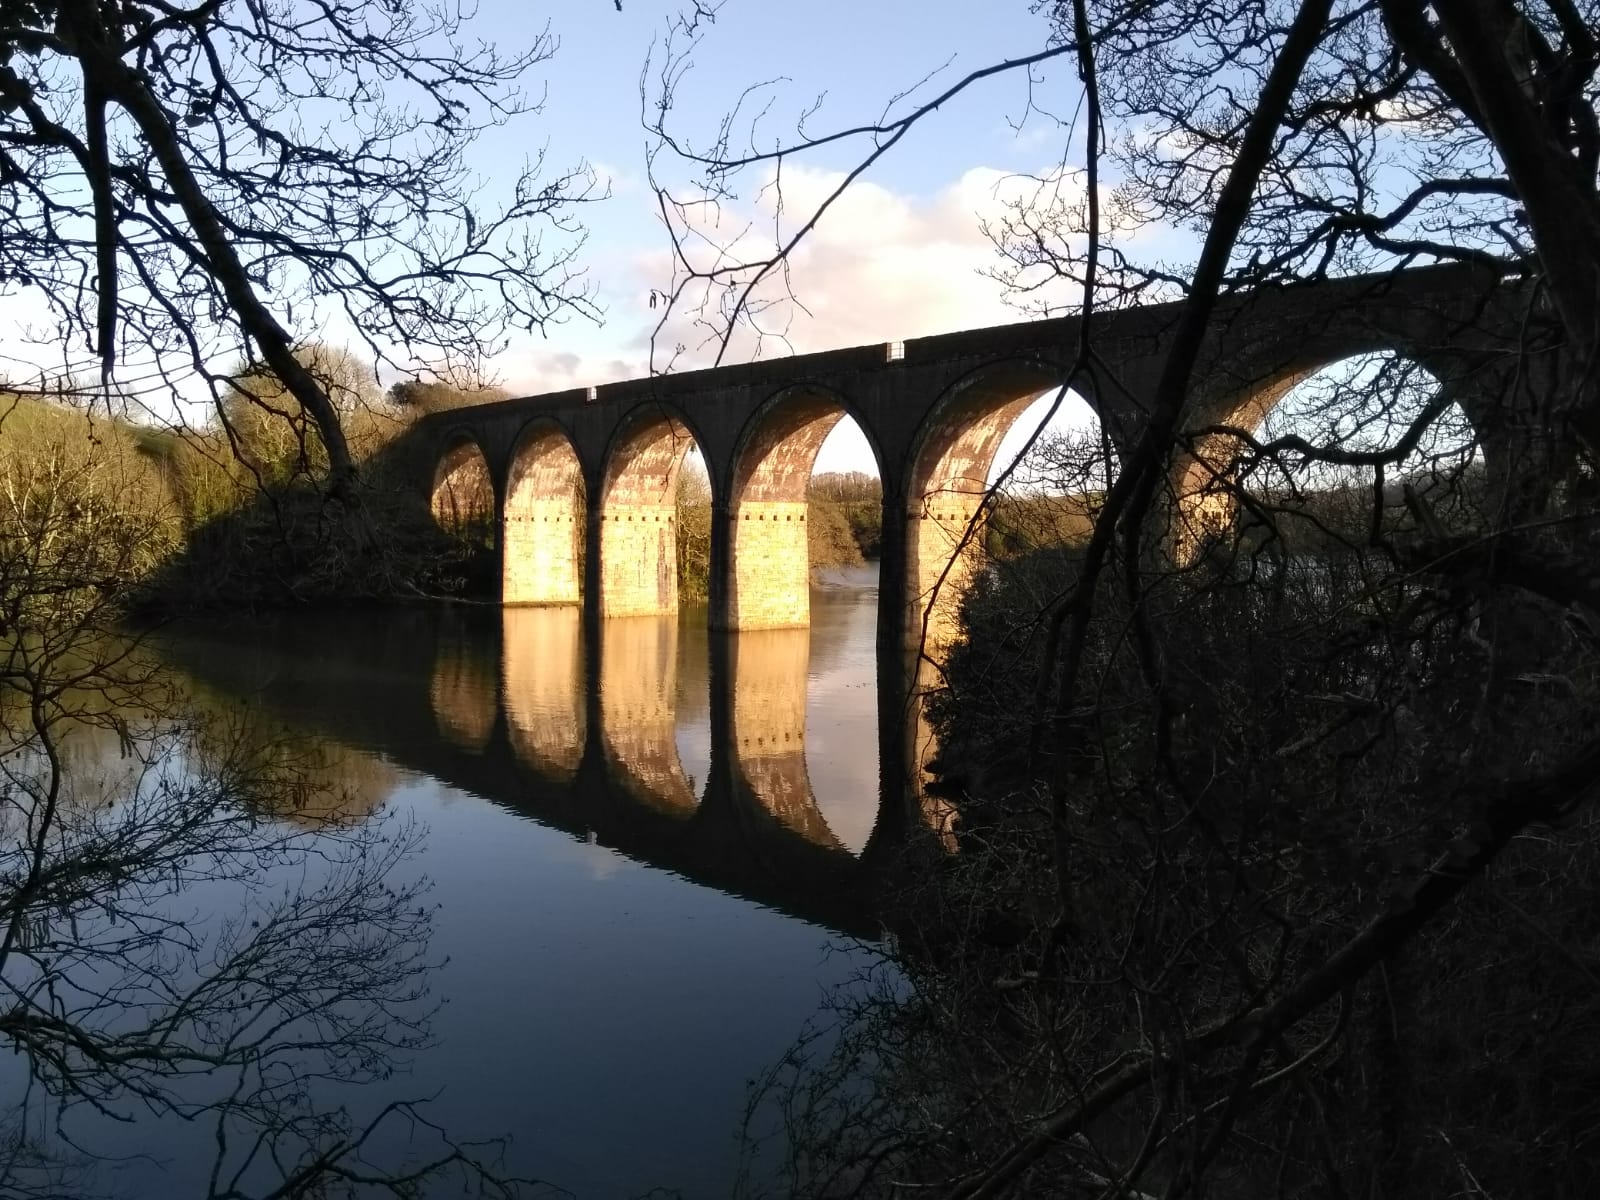 photo: Forder viaduct